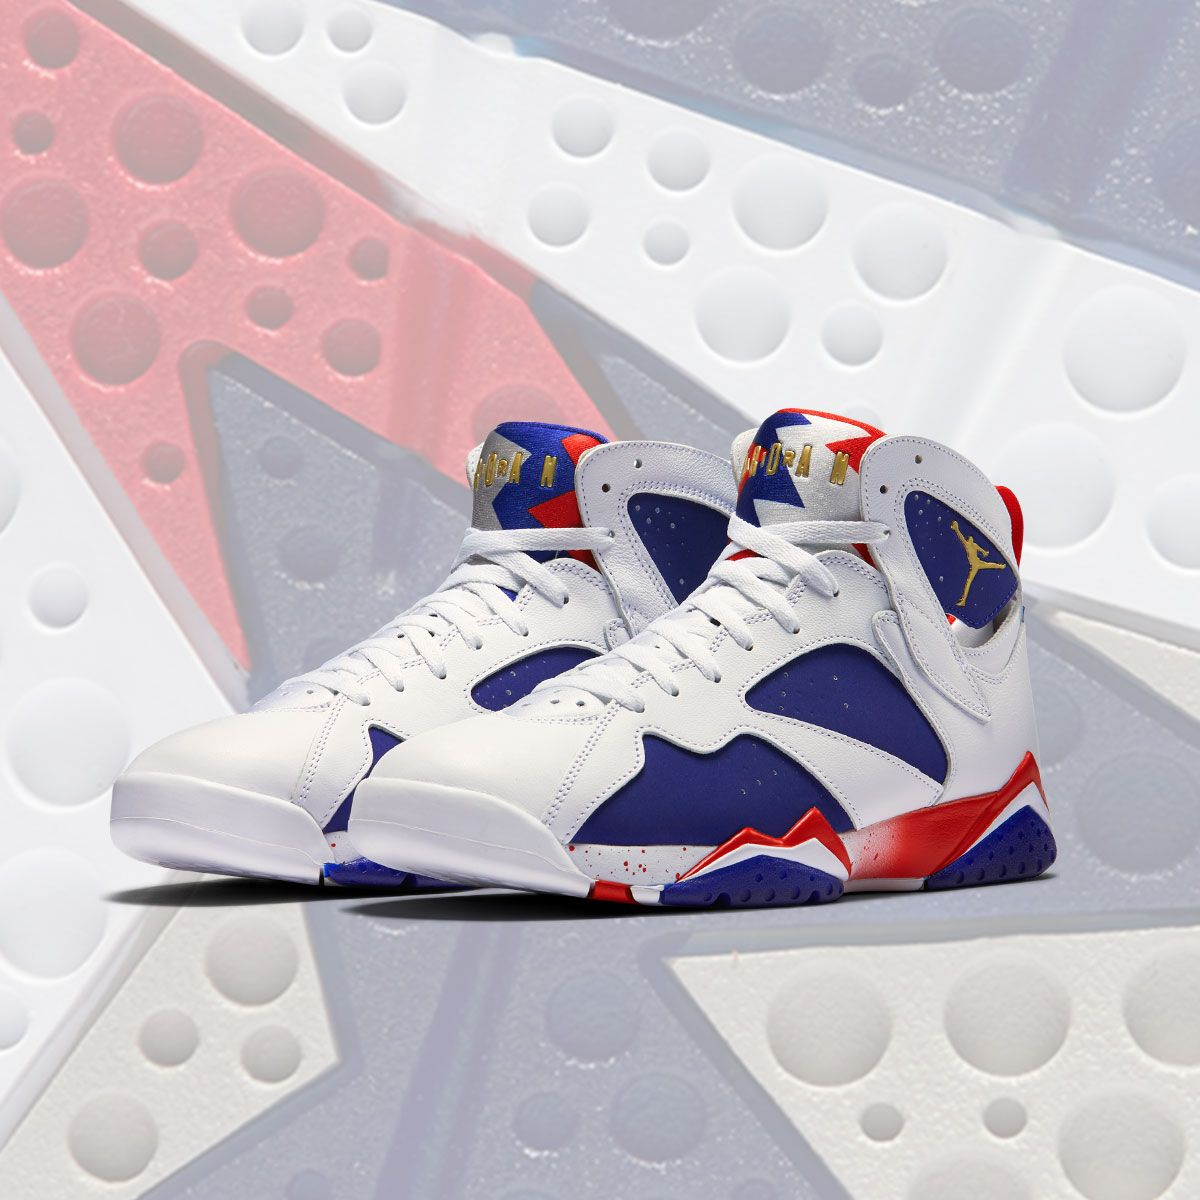 5642d3451c7 Nike Air Jordan 7 VII Retro Sz 12 Olympic Alternate Tinker Red White 304775  123 | eBay | Sneaky in 2019 | Air jordans, Nike air shoes, Jordans